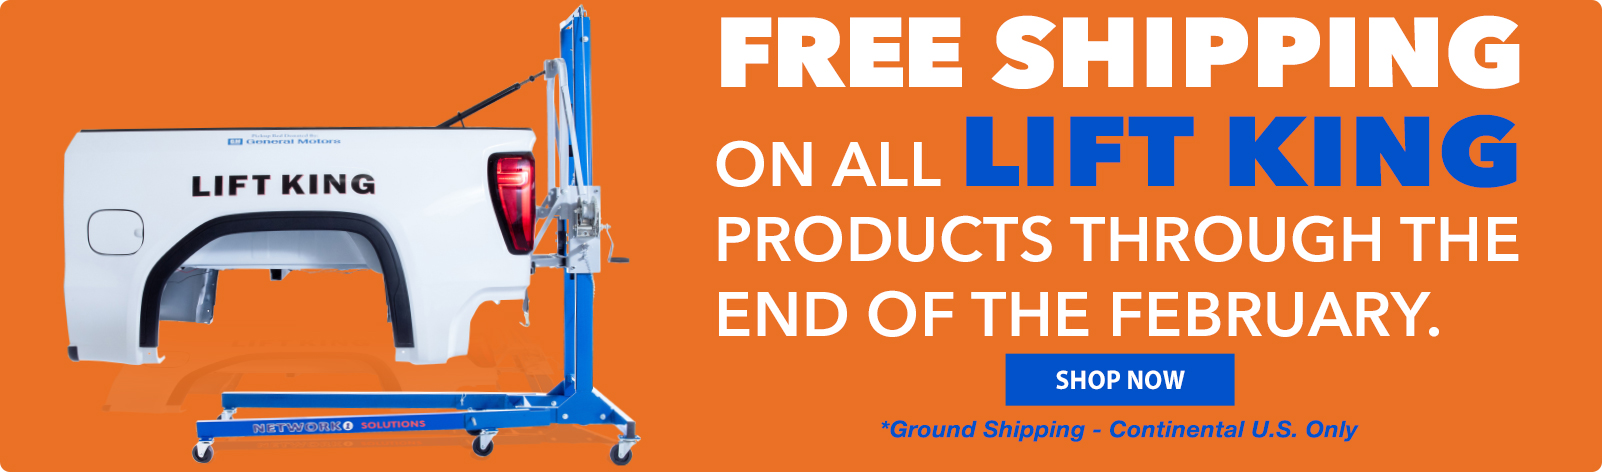 Free Shipping On LIFT KING Through the End of the Year!!